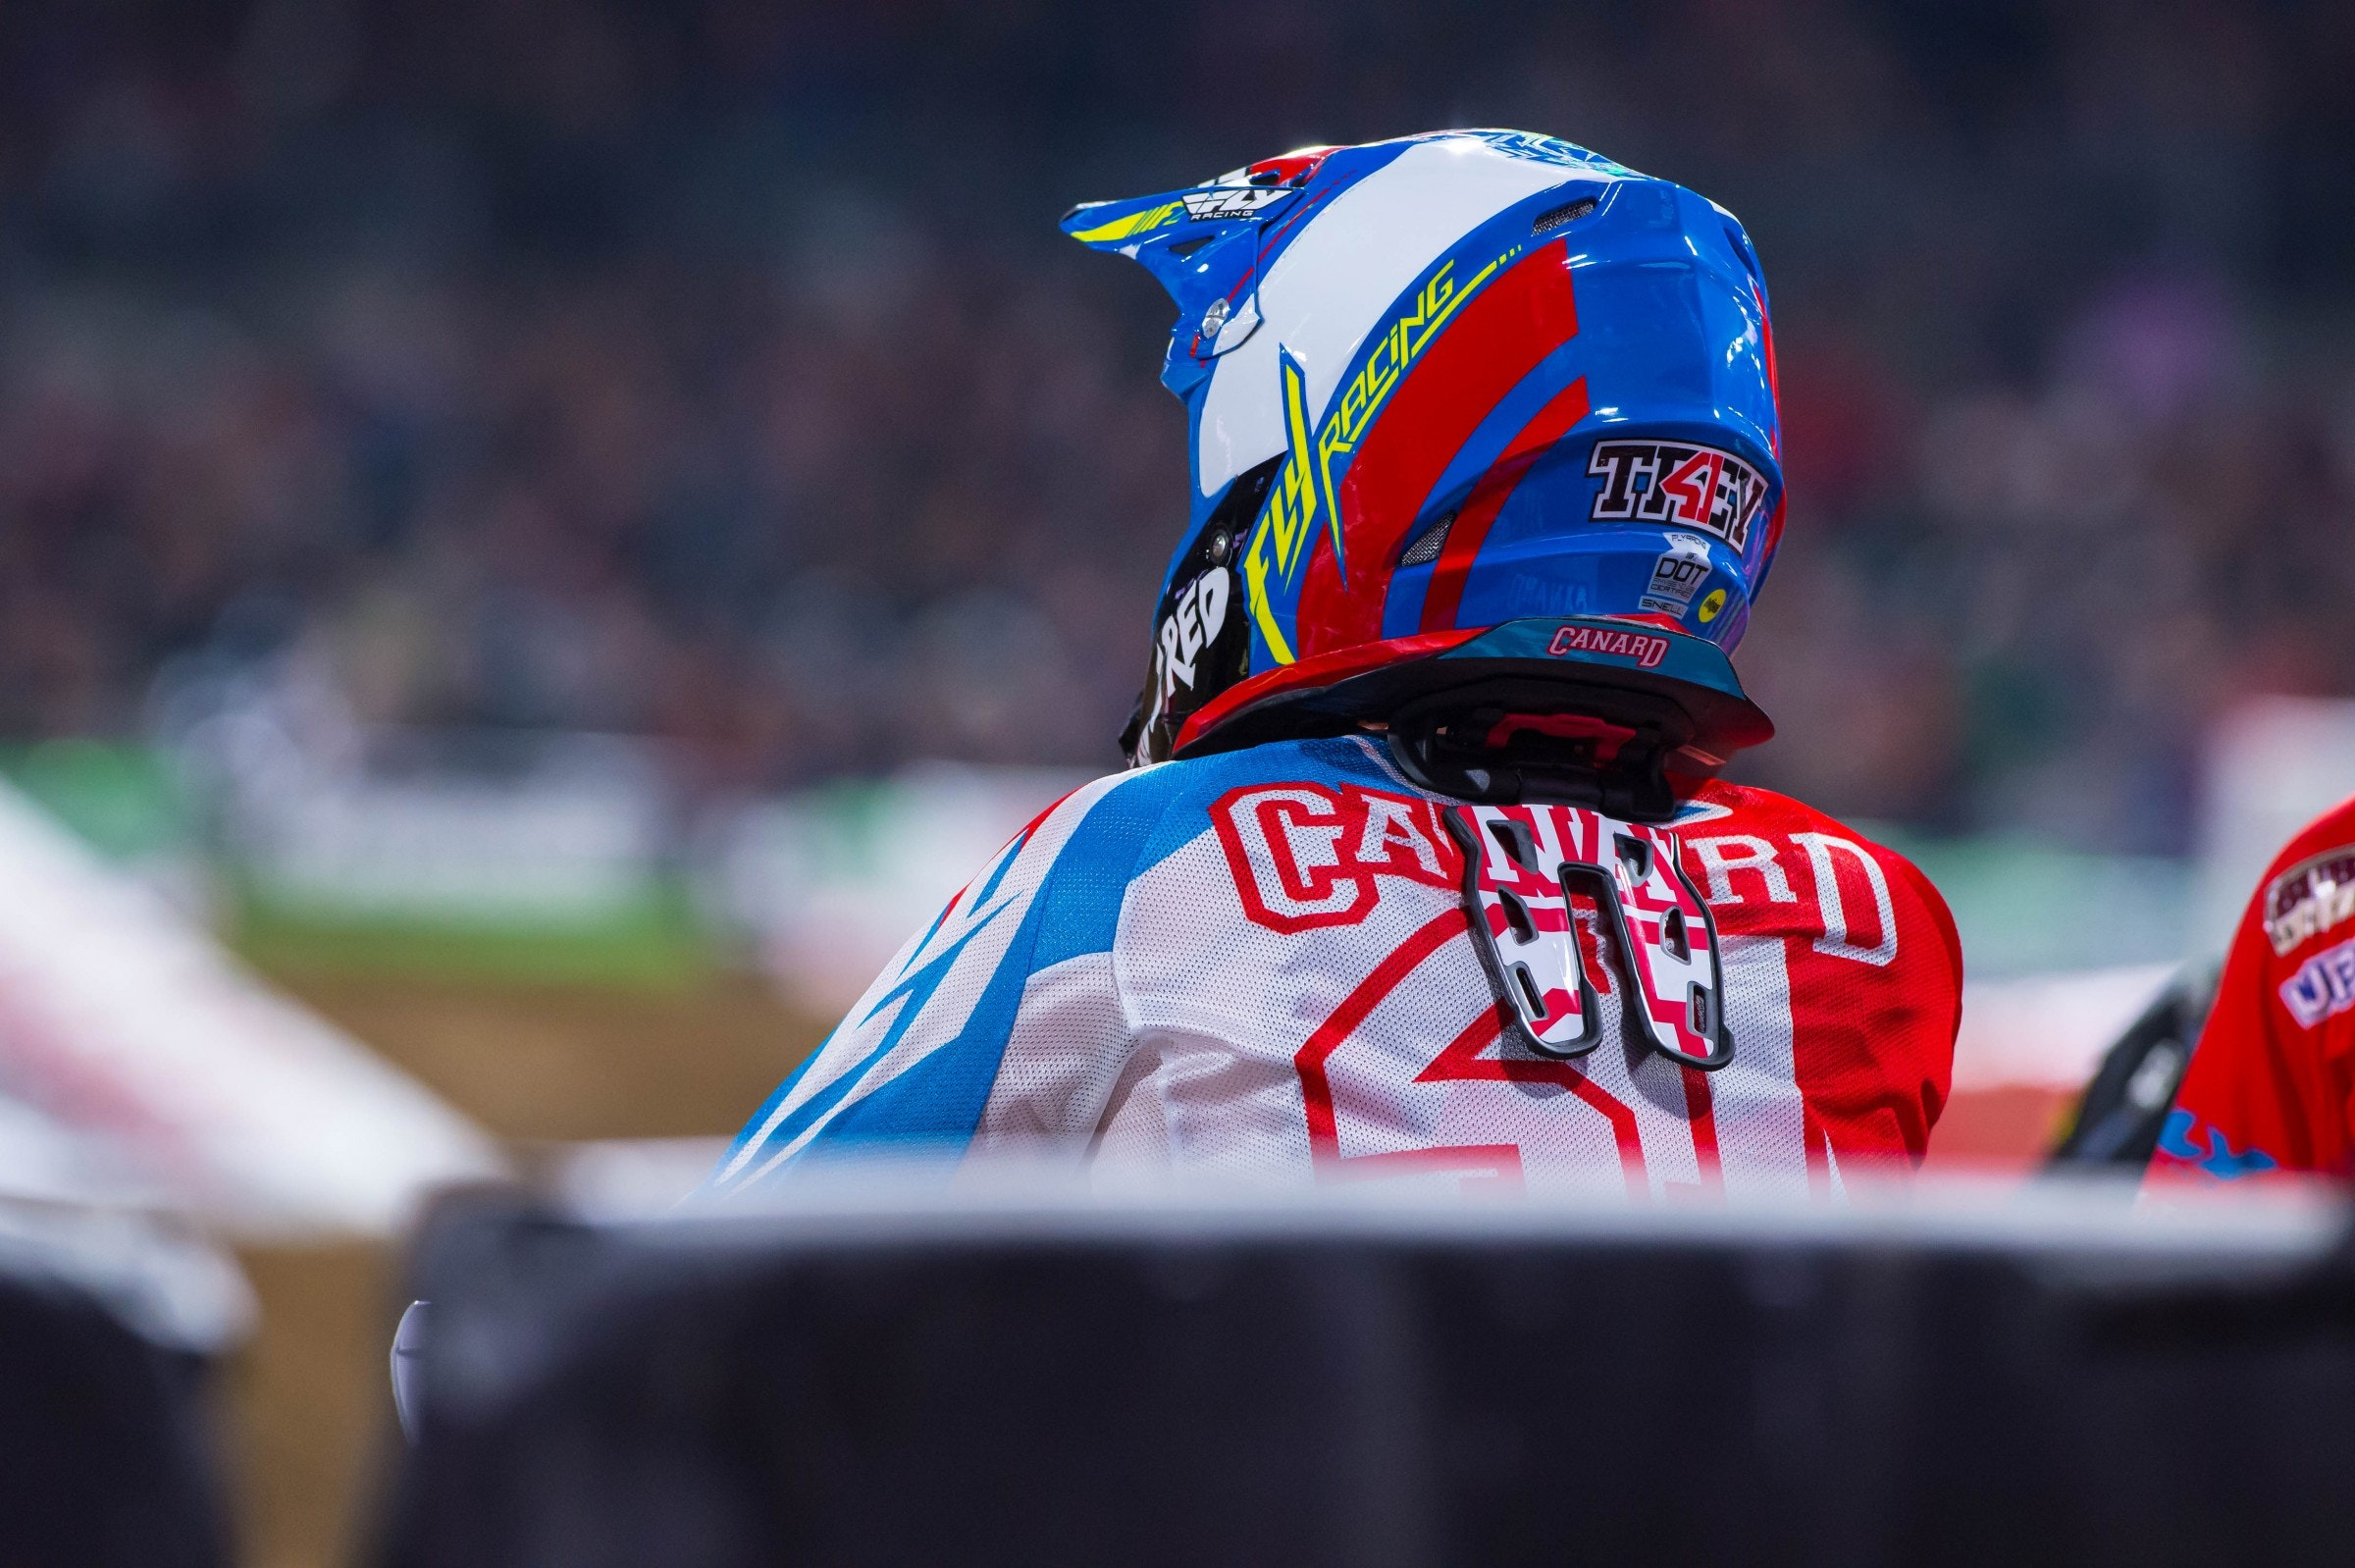 Canard was solid in his return last week. Can he snag a podium this weekend?